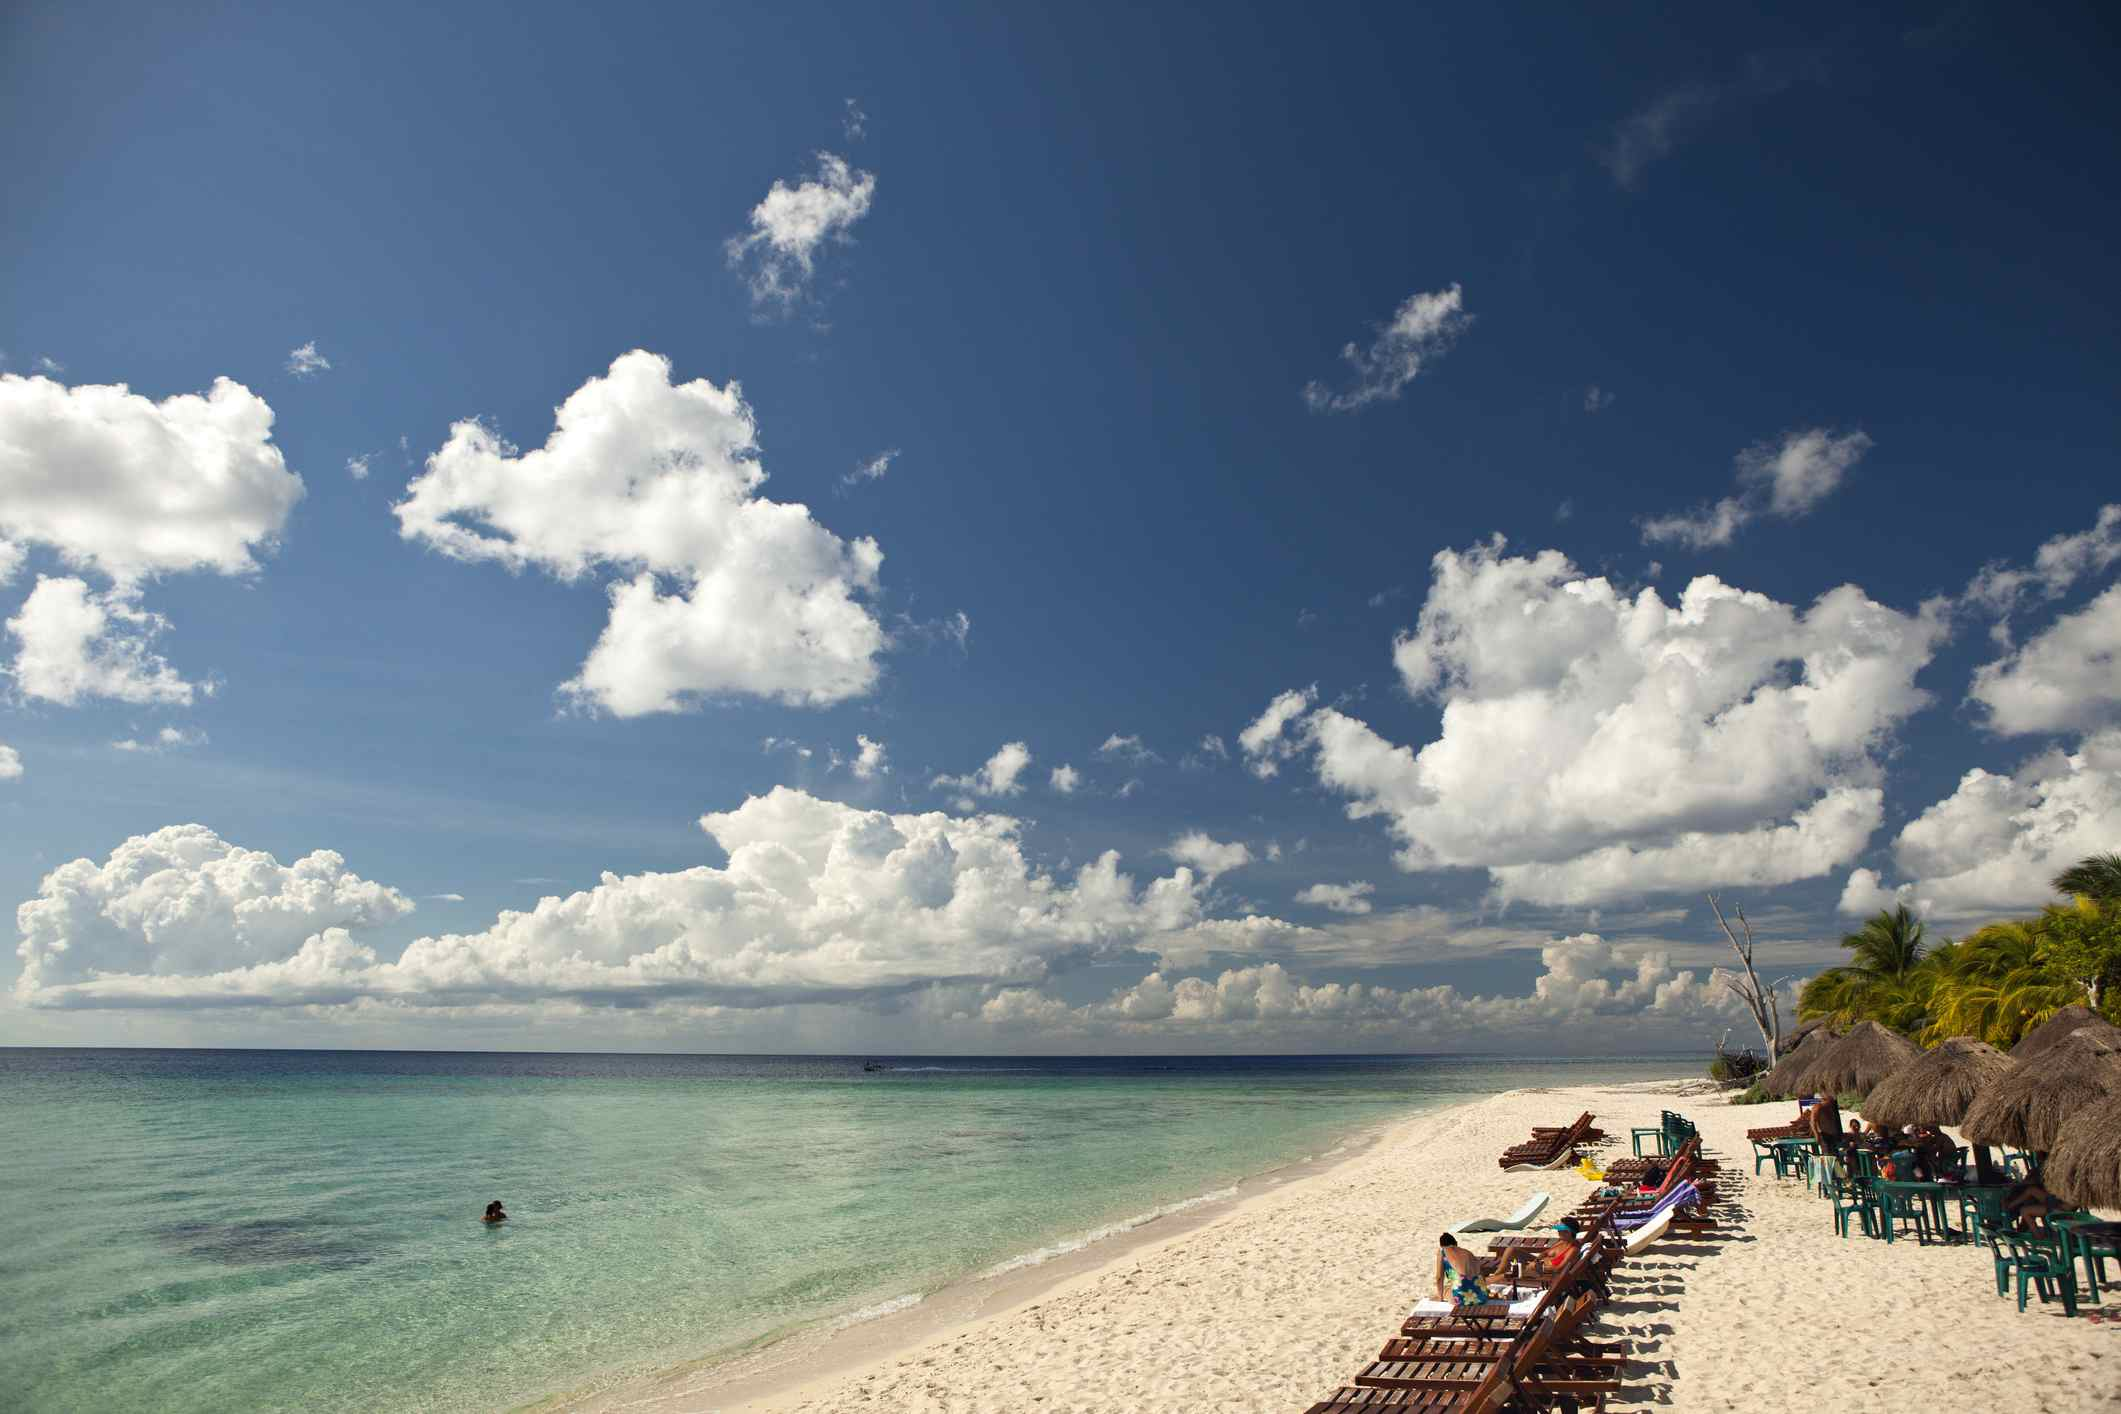 People laying out on a beach in Cozumel, Mexico